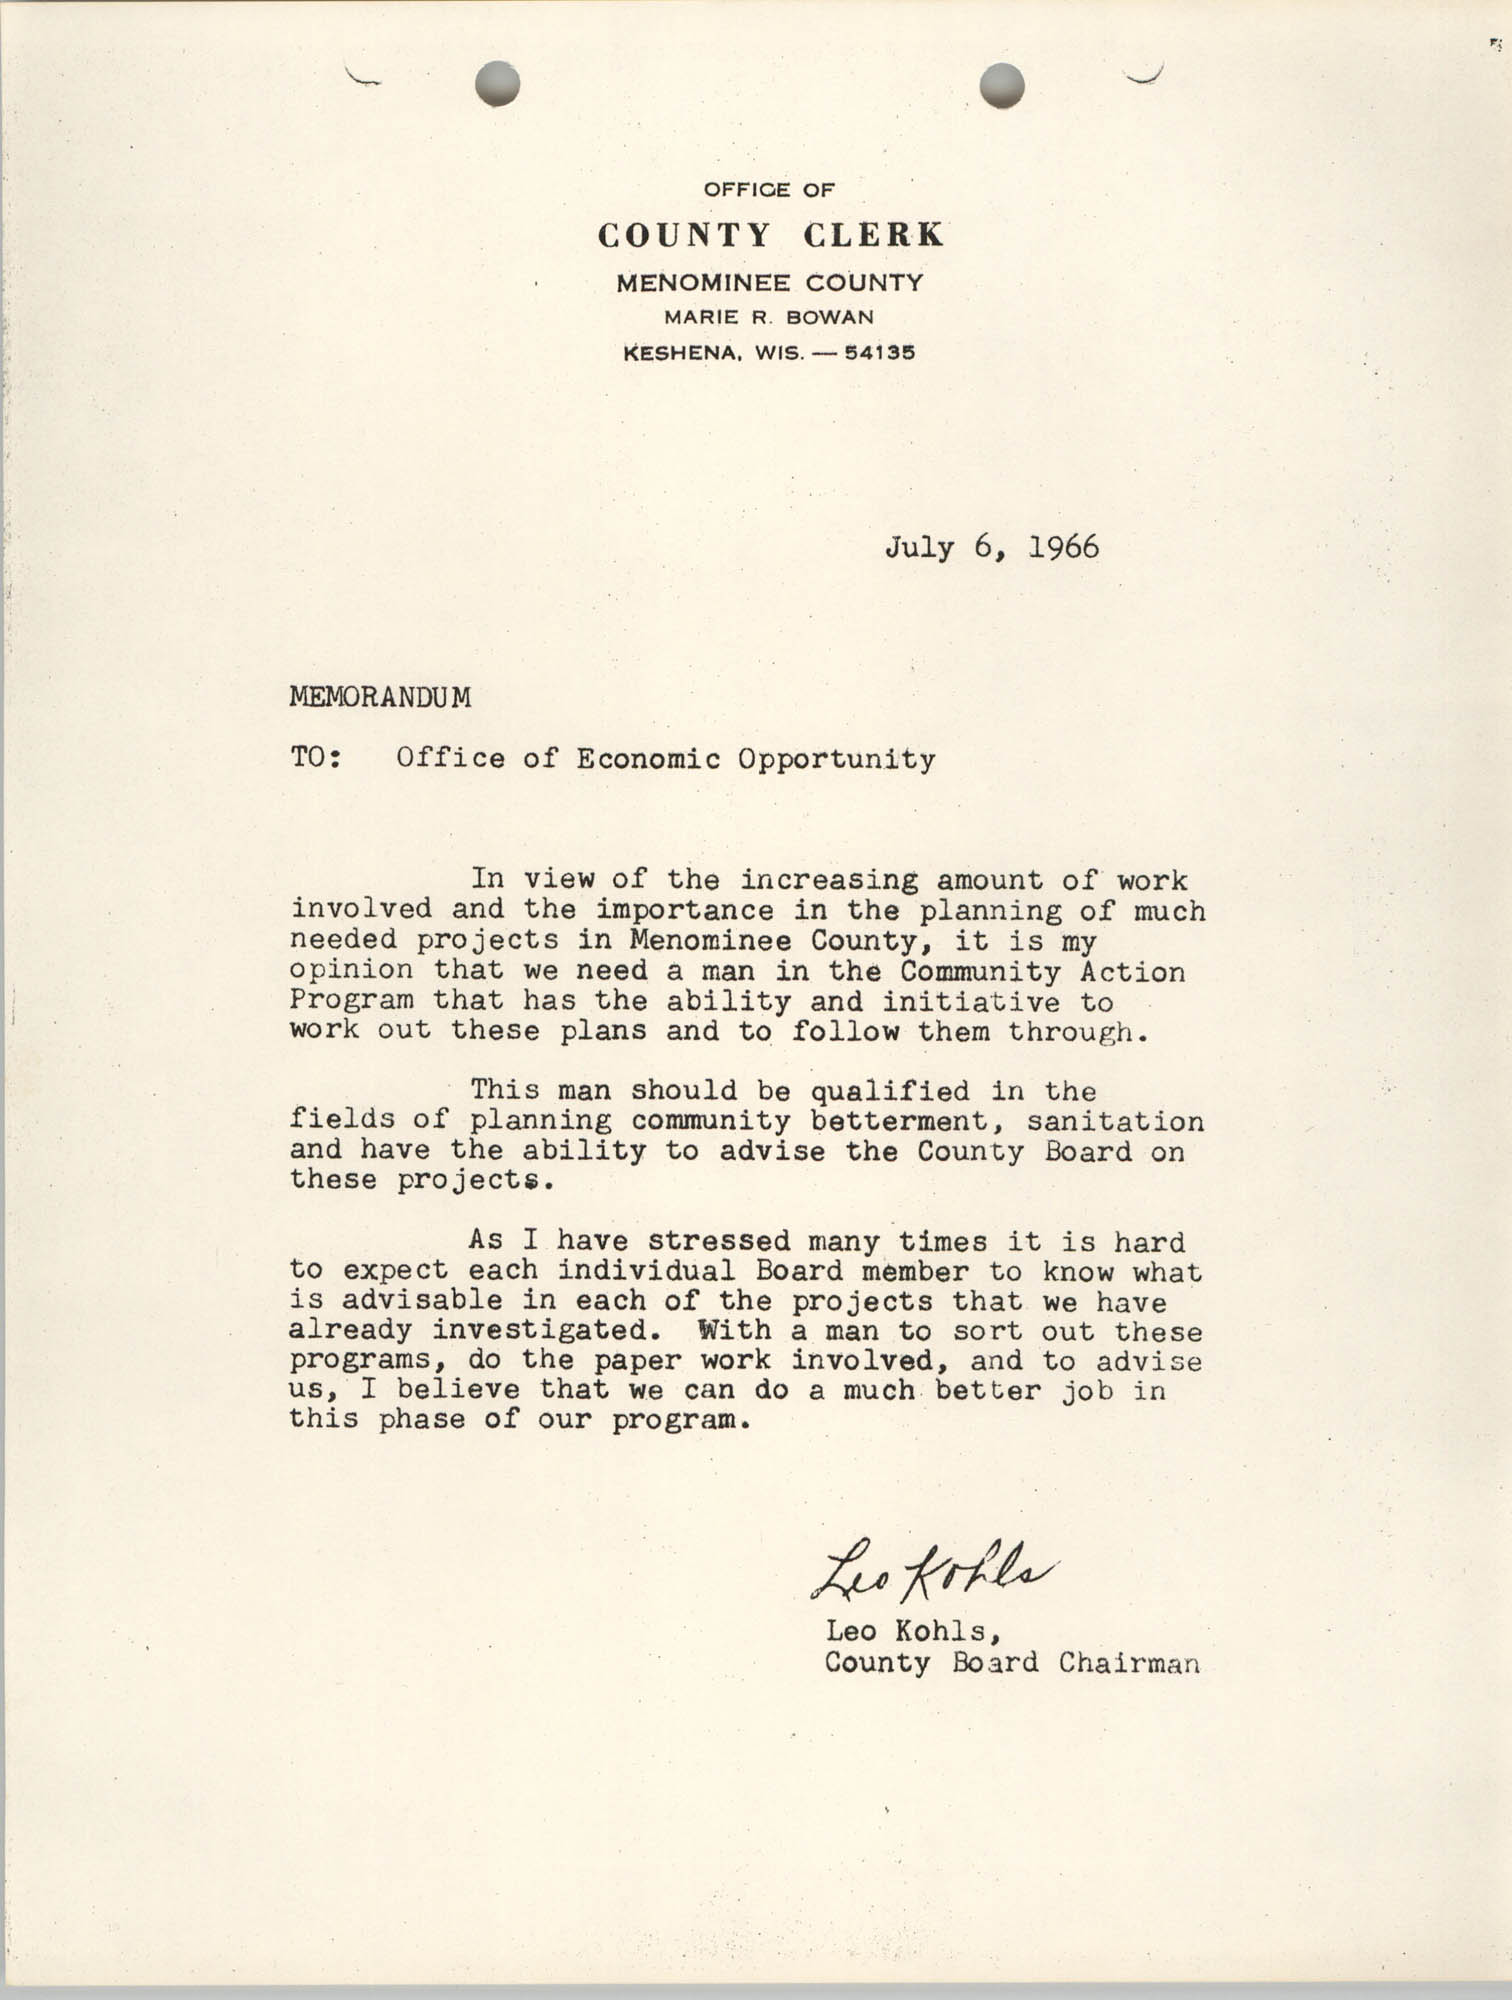 Memorandum from Leo Kohls to Office of Economic Opportunity, July 6, 1966